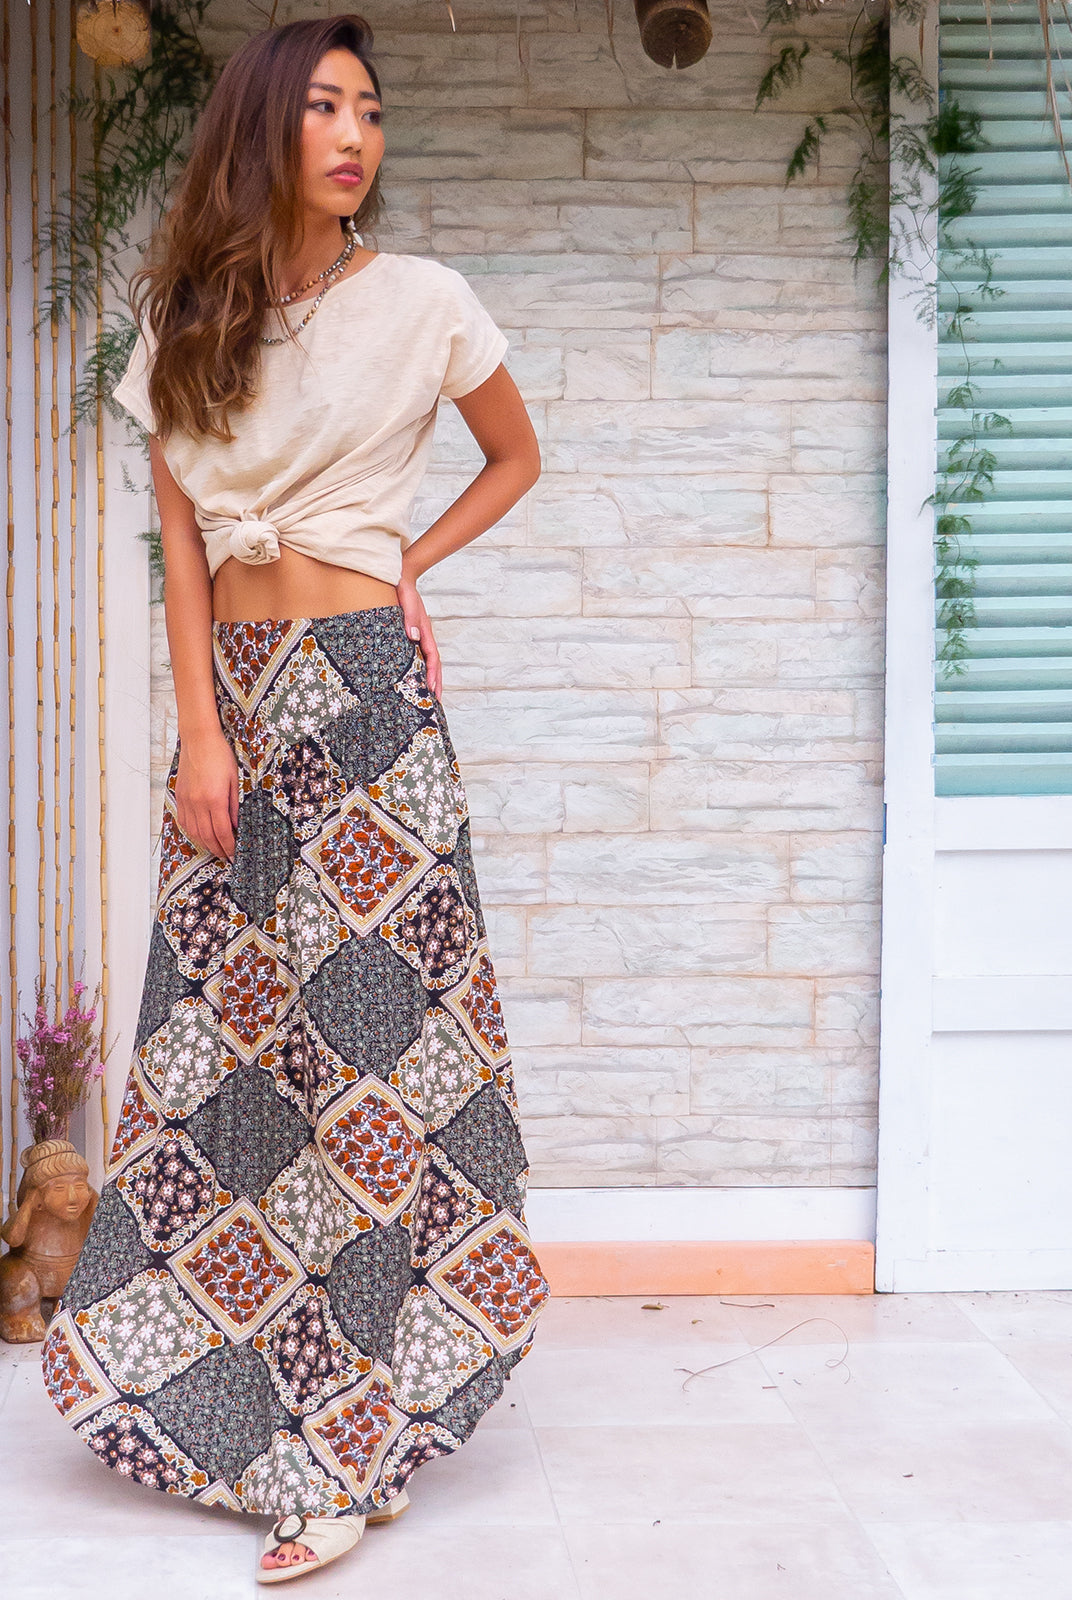 Sails Capitano Maxi Skirt with a soft ruched elastic back and pockets in a gorgeous black based intricate floral patchwork print on rayon fabric